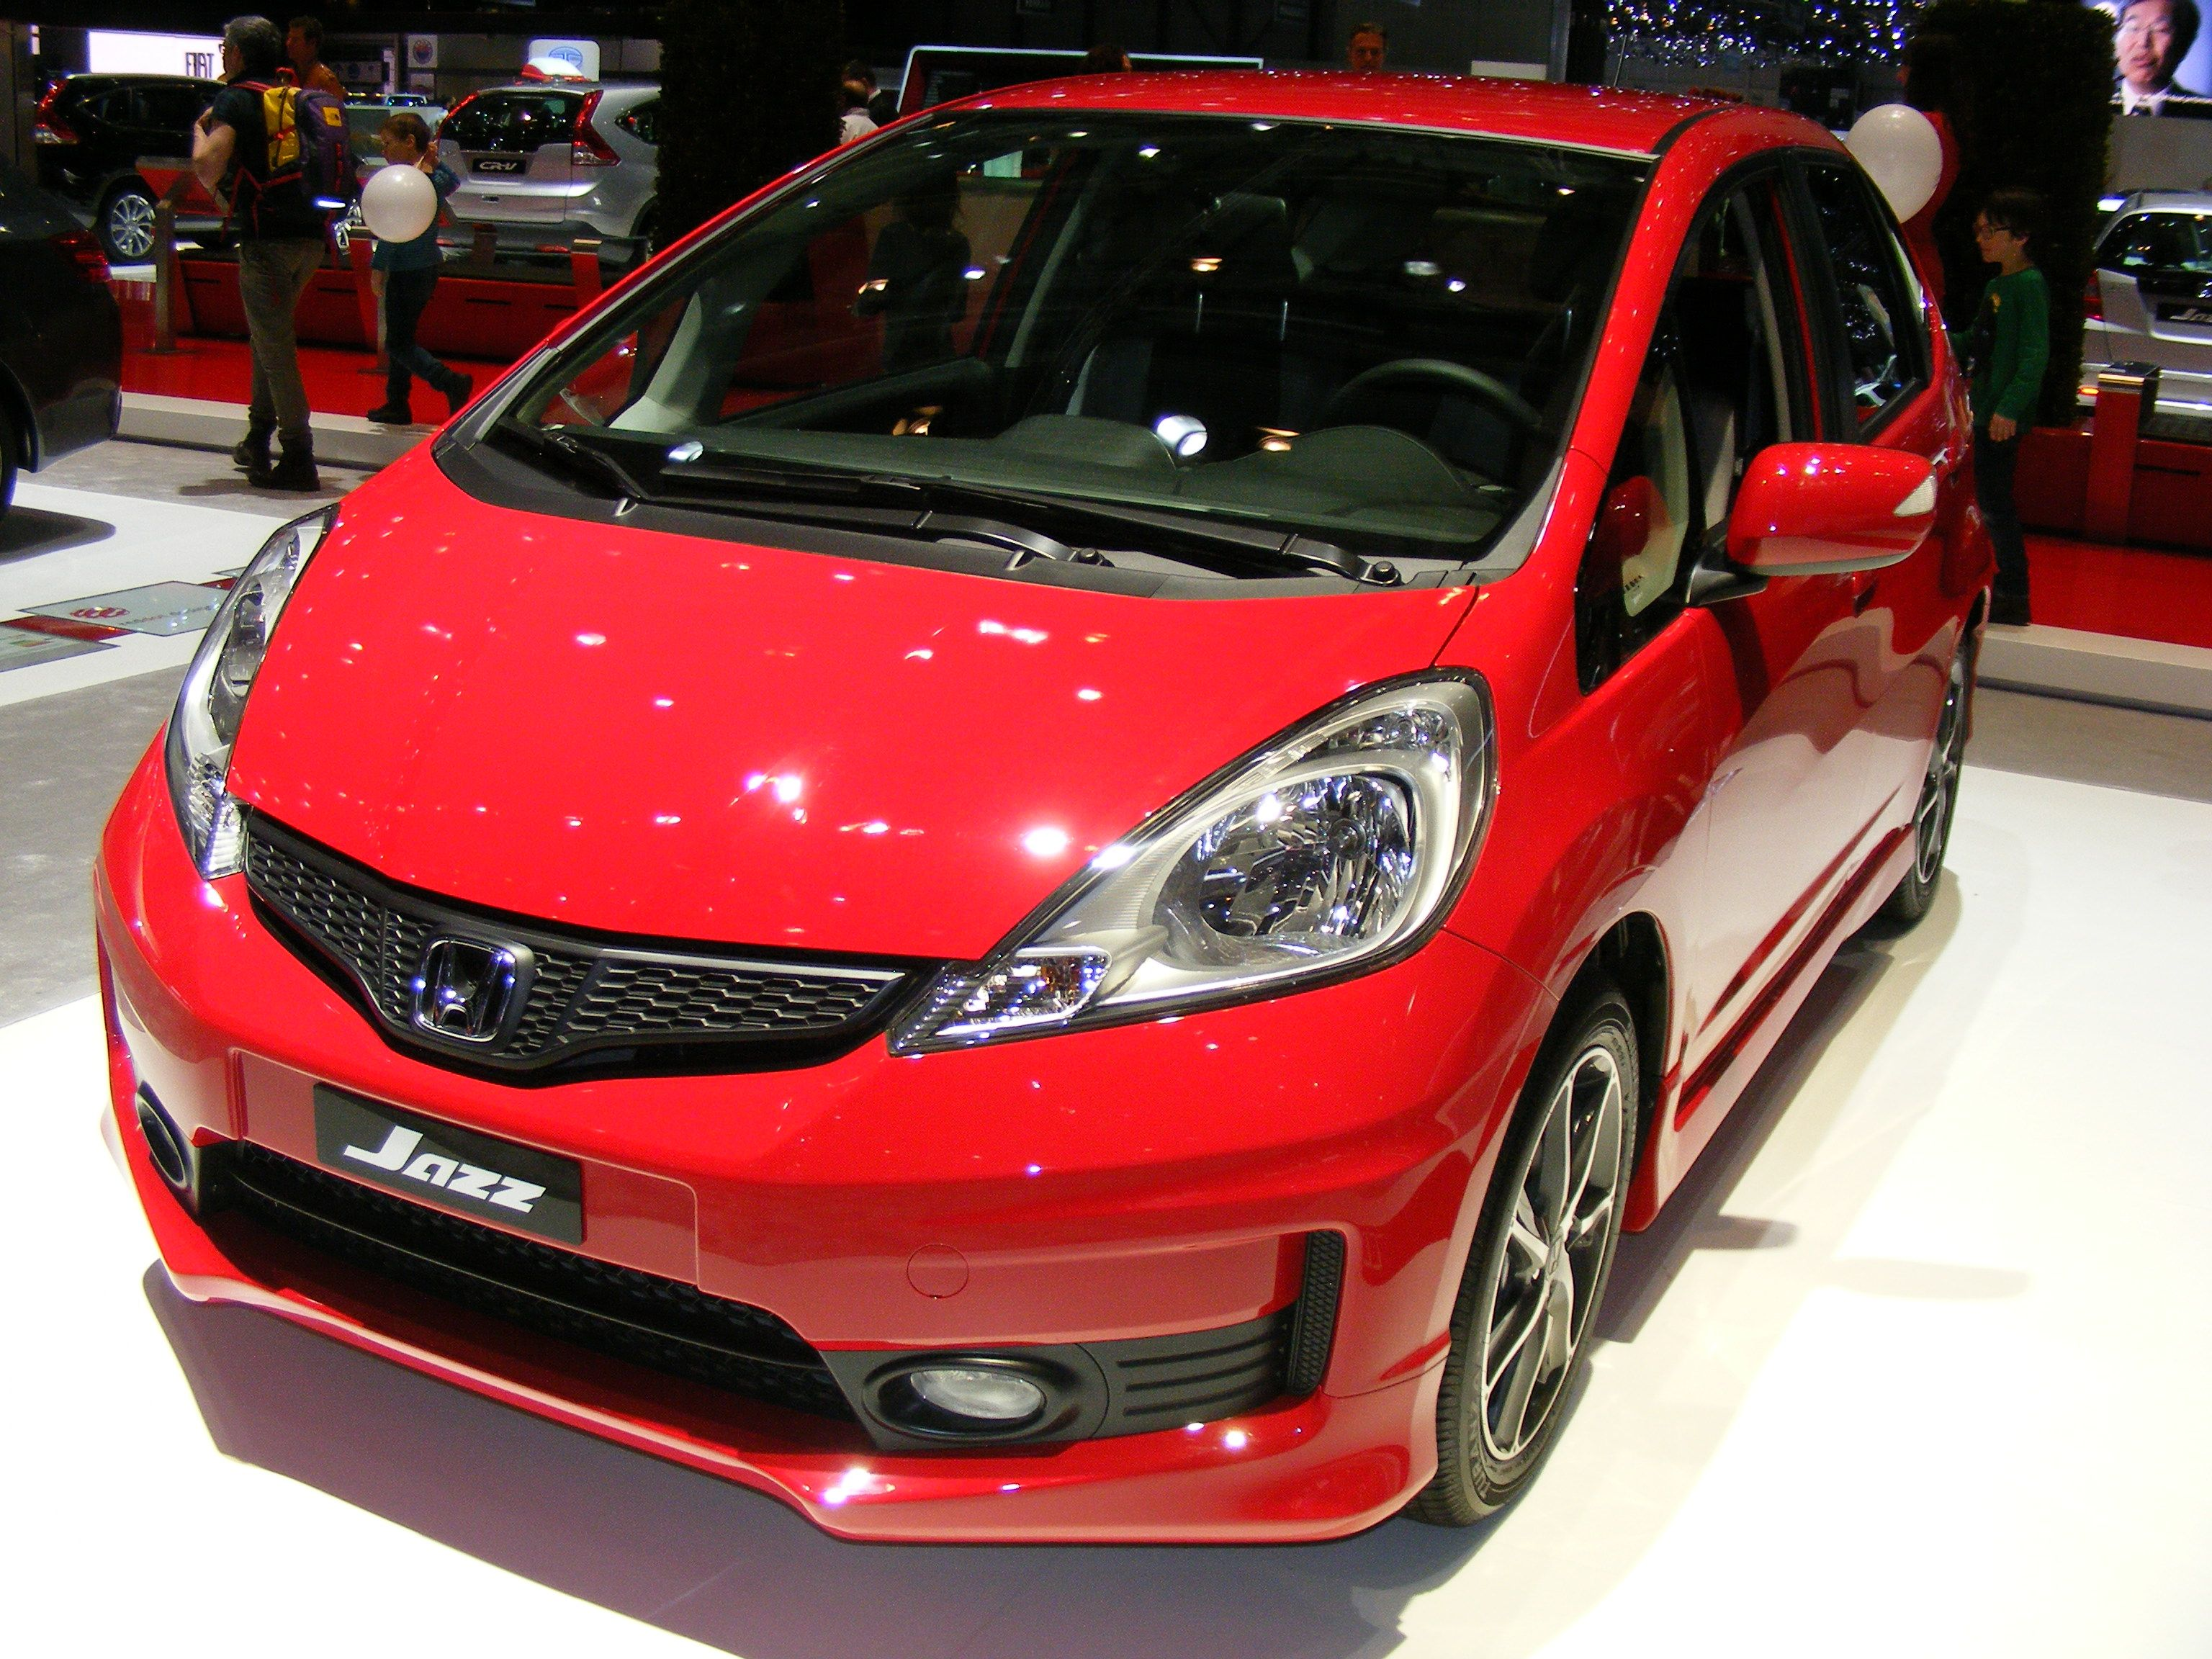 0dce5eb6d9e7371a094375f9c458a715 Cool Review About Honda Fit Pictures with Extraordinary Images Cars Review